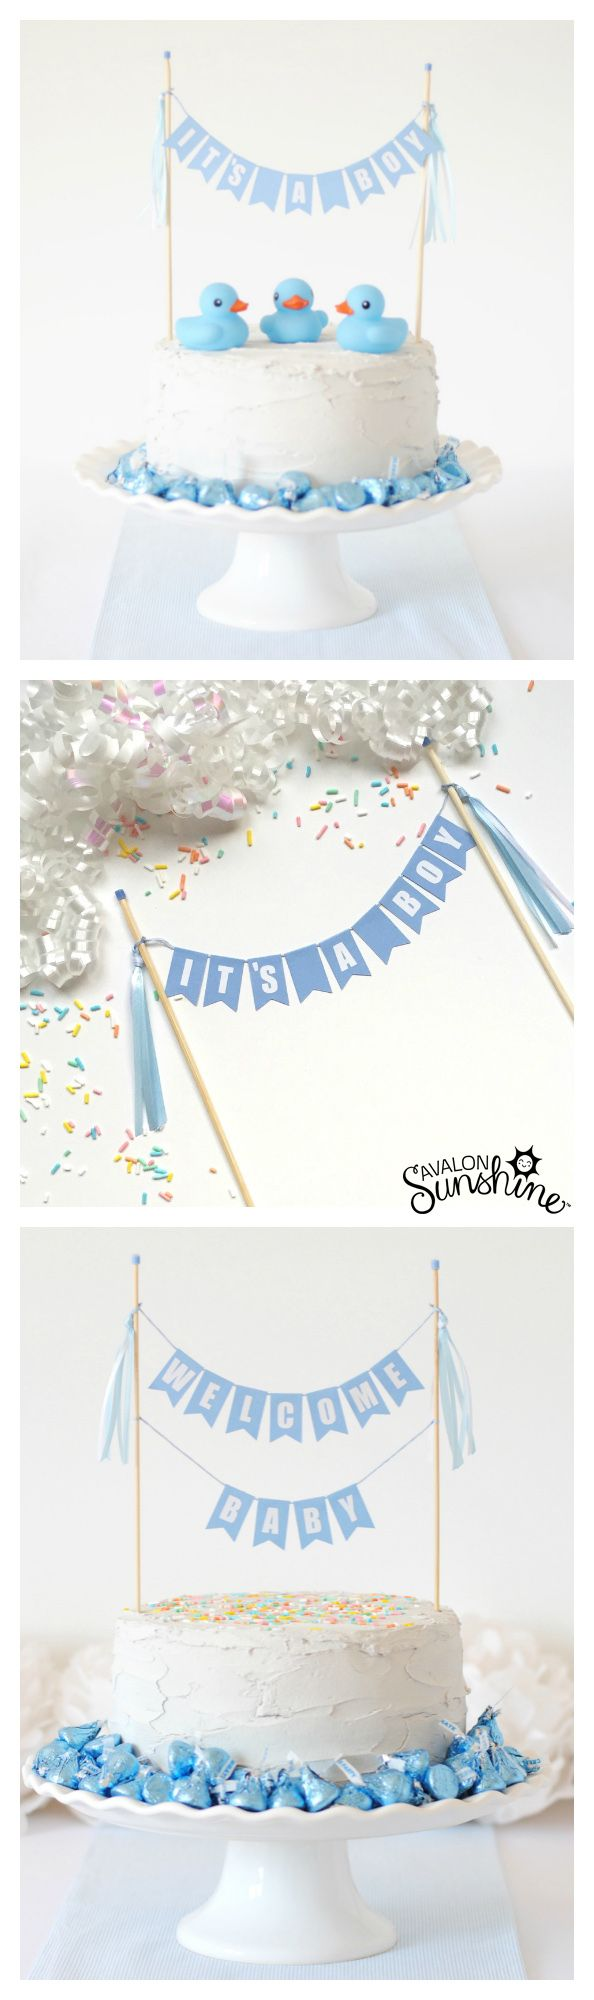 Cake Topper for Boys Baby Shower - Available in many colors and different wording options.  Bake your own simple cake and make the decorating easy with this cake topper!